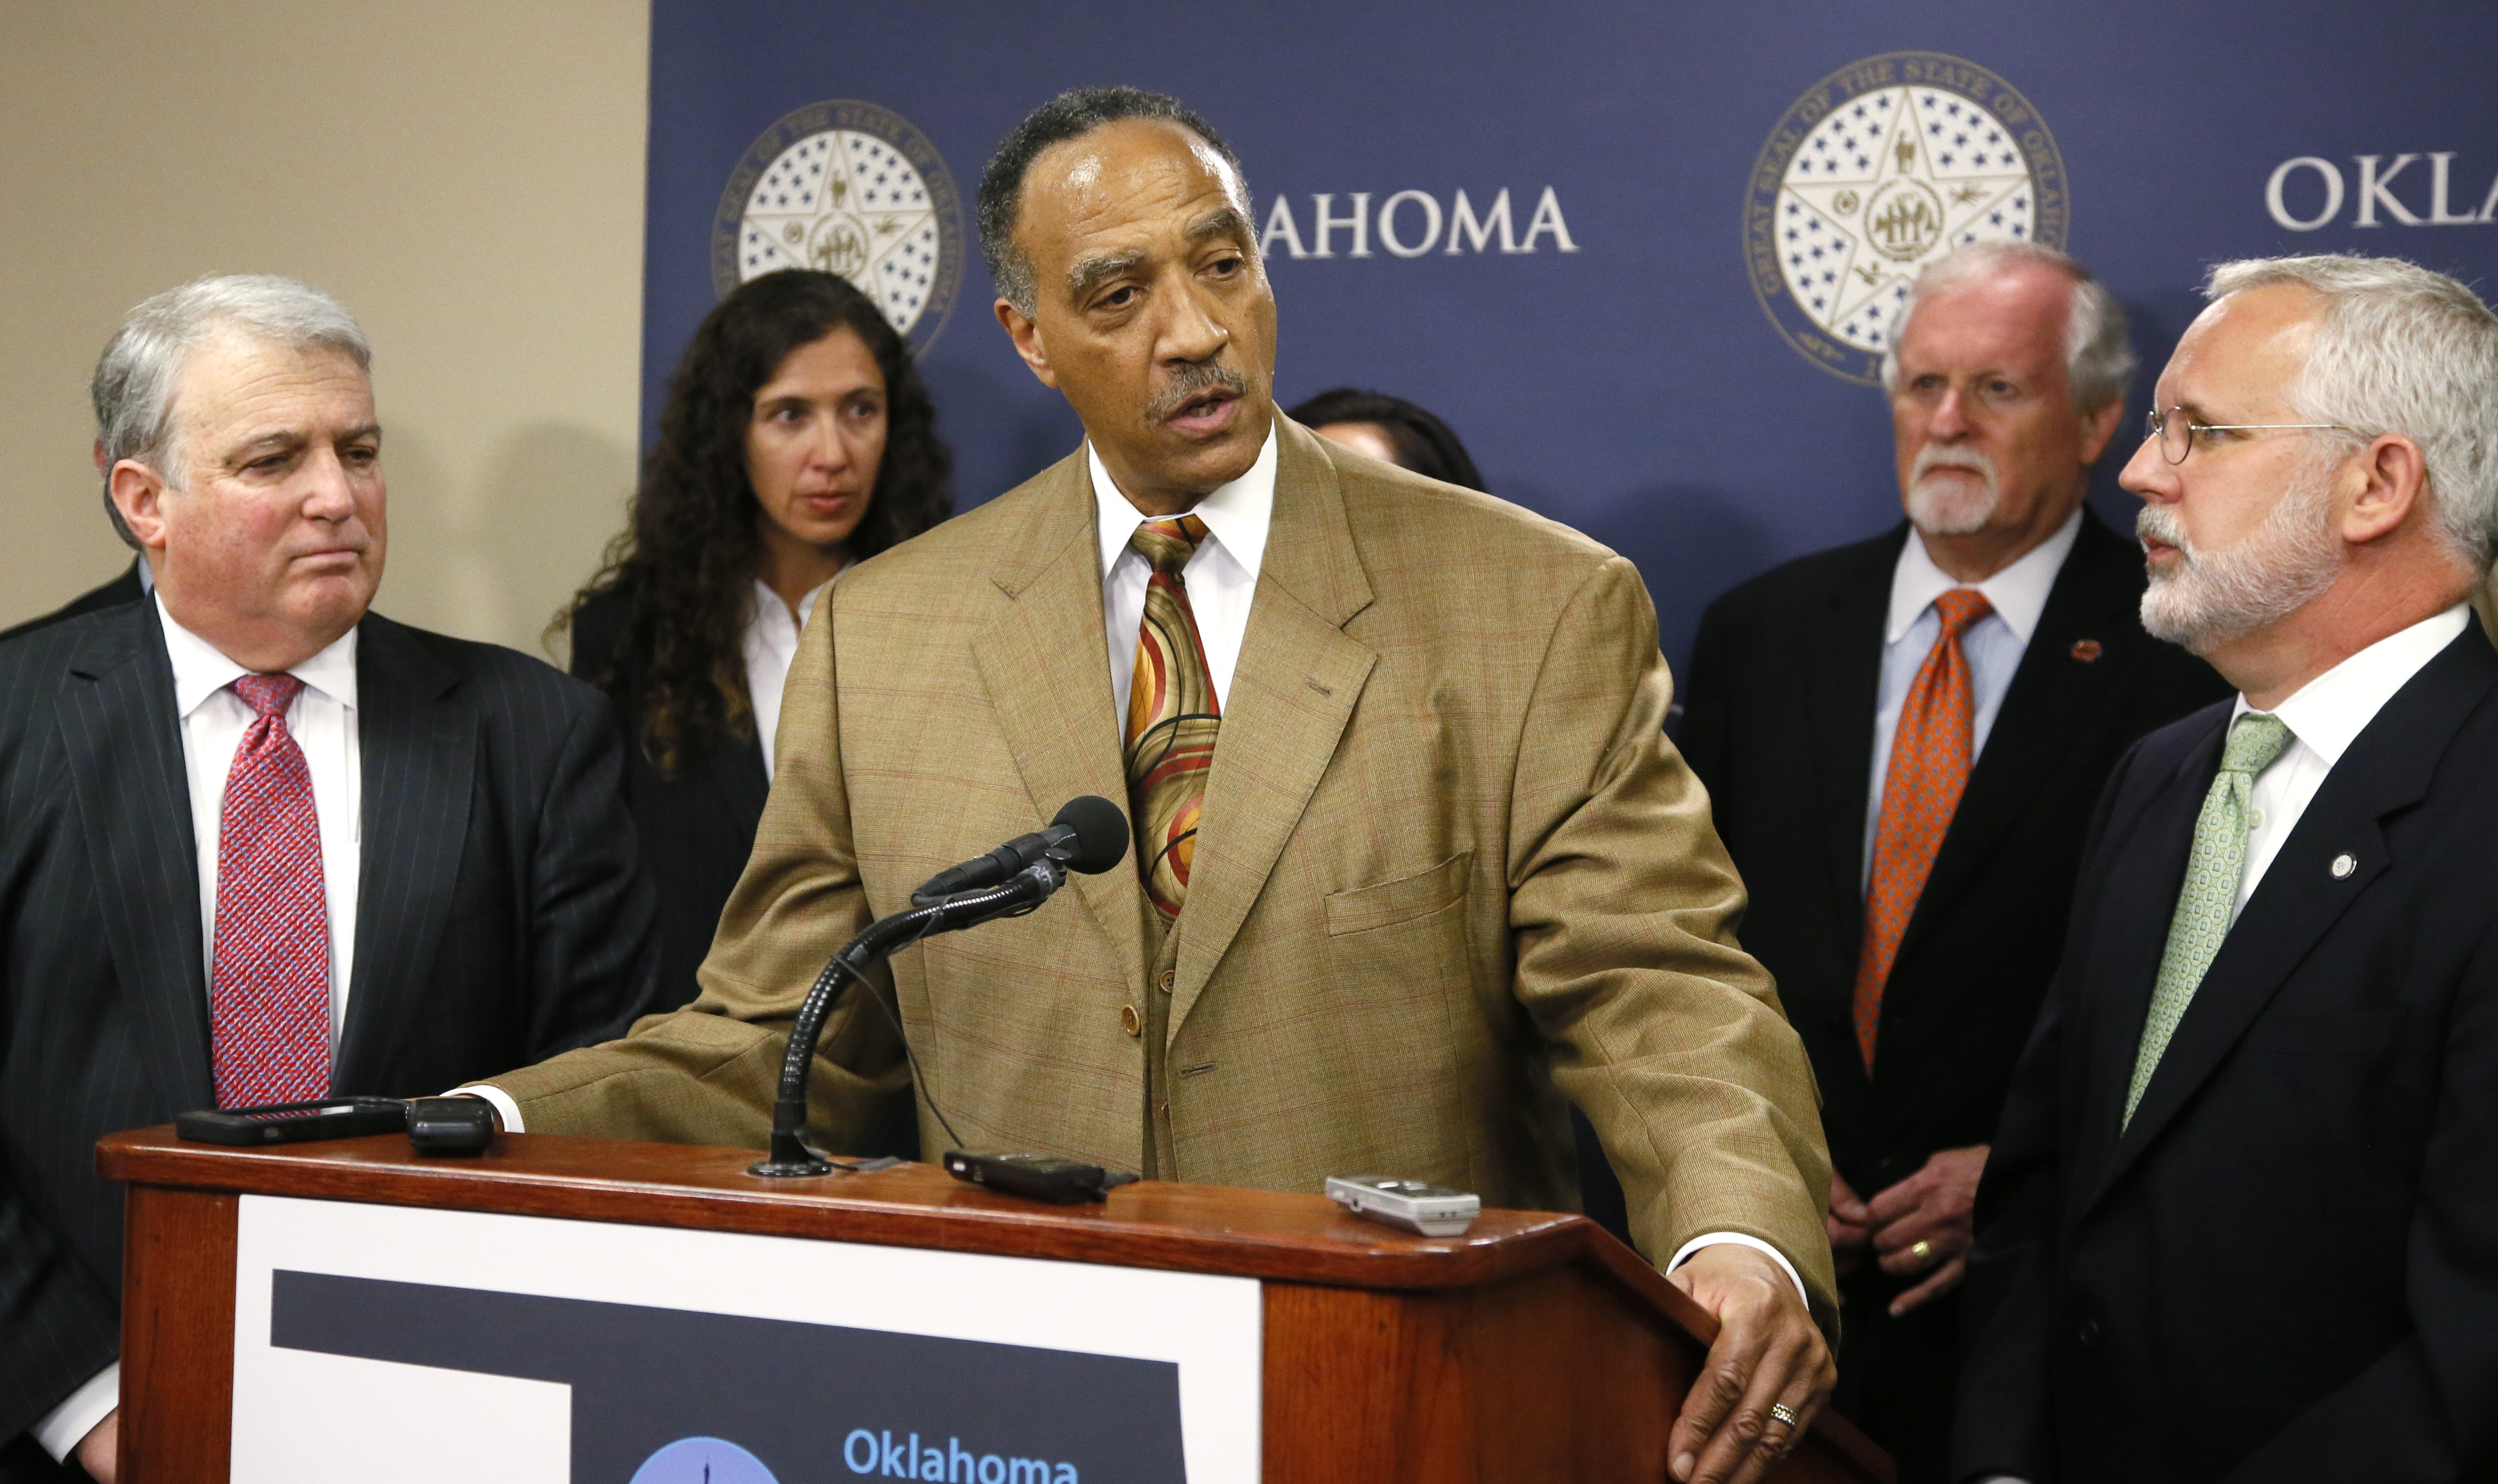 Robert H. Alexander, Jr., center, a member of the Oklahoma Death Penalty Review Commission, speaks during a news conference in Oklahoma City, Tuesday, April 25, 2017. The commission released a report that says the state should extend its moratorium on capital punishment. At left is Andy Lester and at right is former Oklahoma Gov. Brad Henry. (AP Photo/Sue Ogrocki)